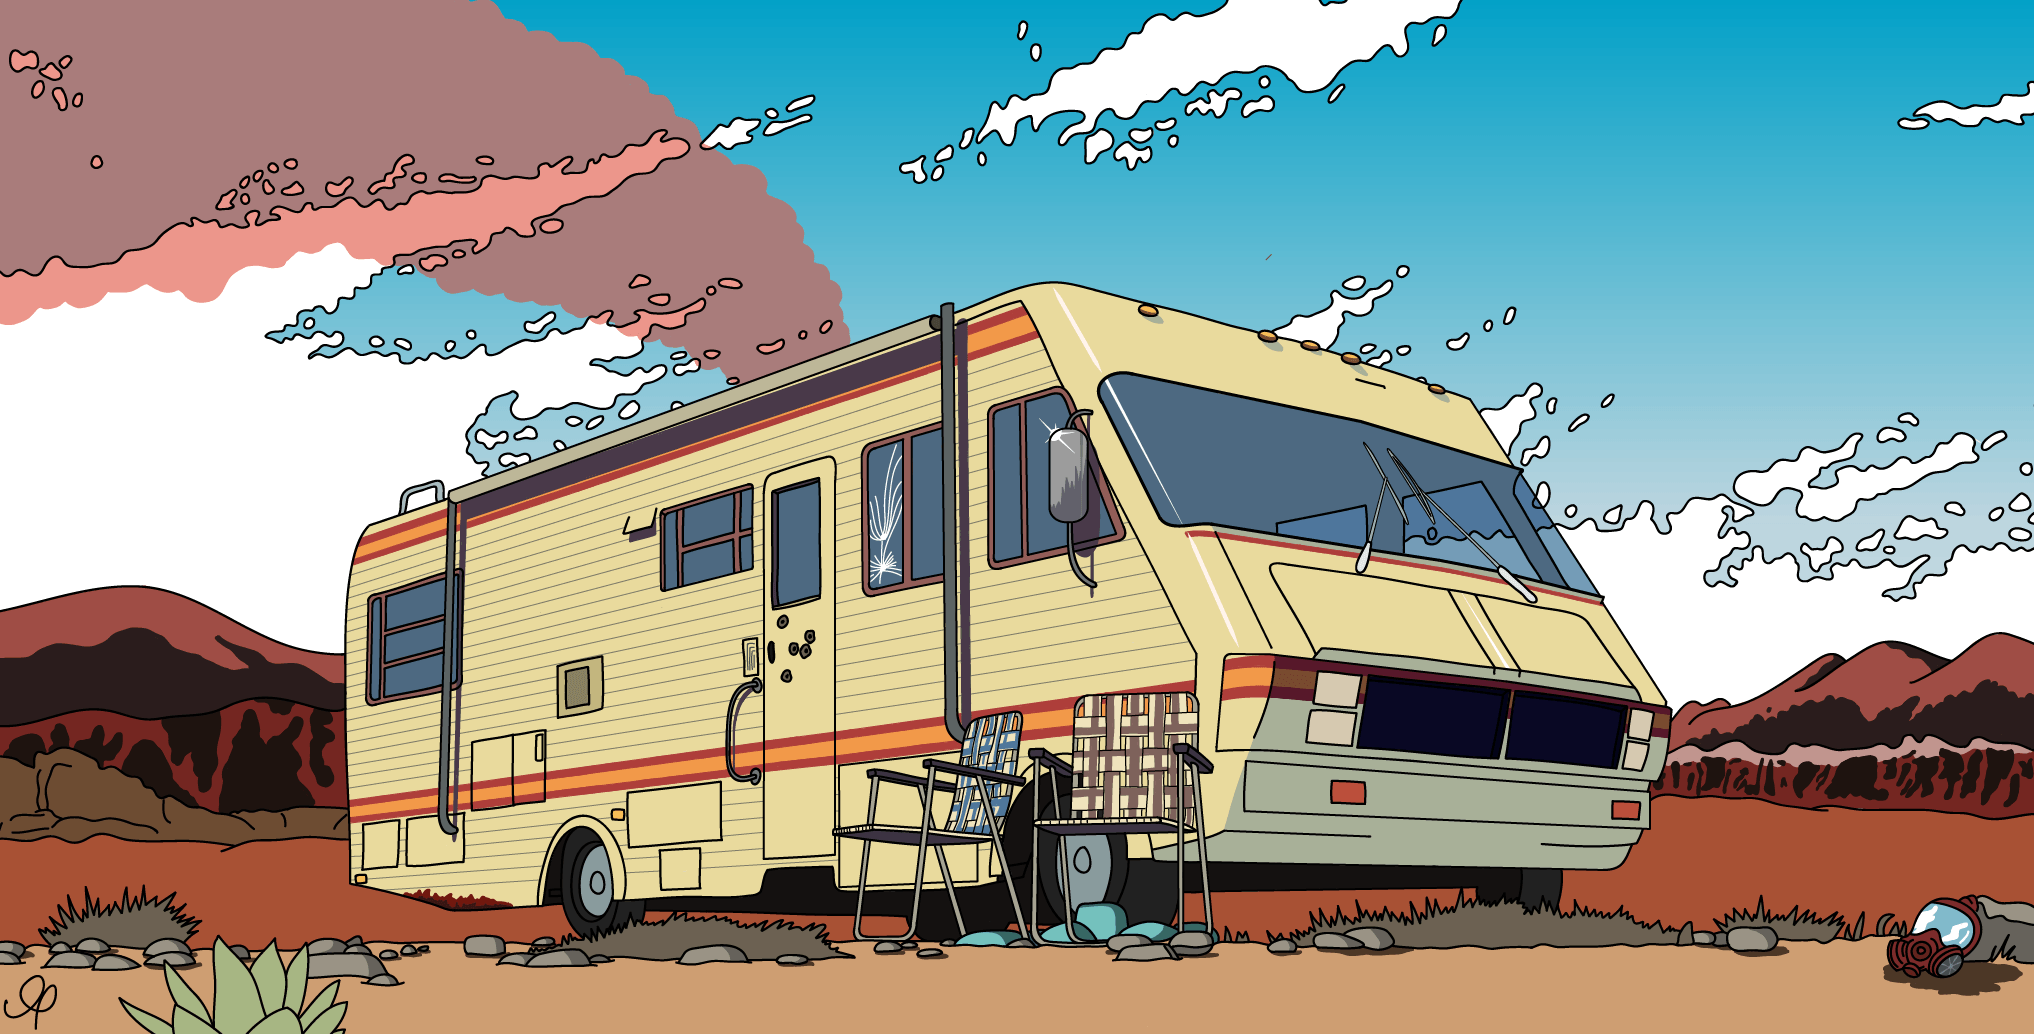 Just an awesome wallpaper I came across. : breakingbad